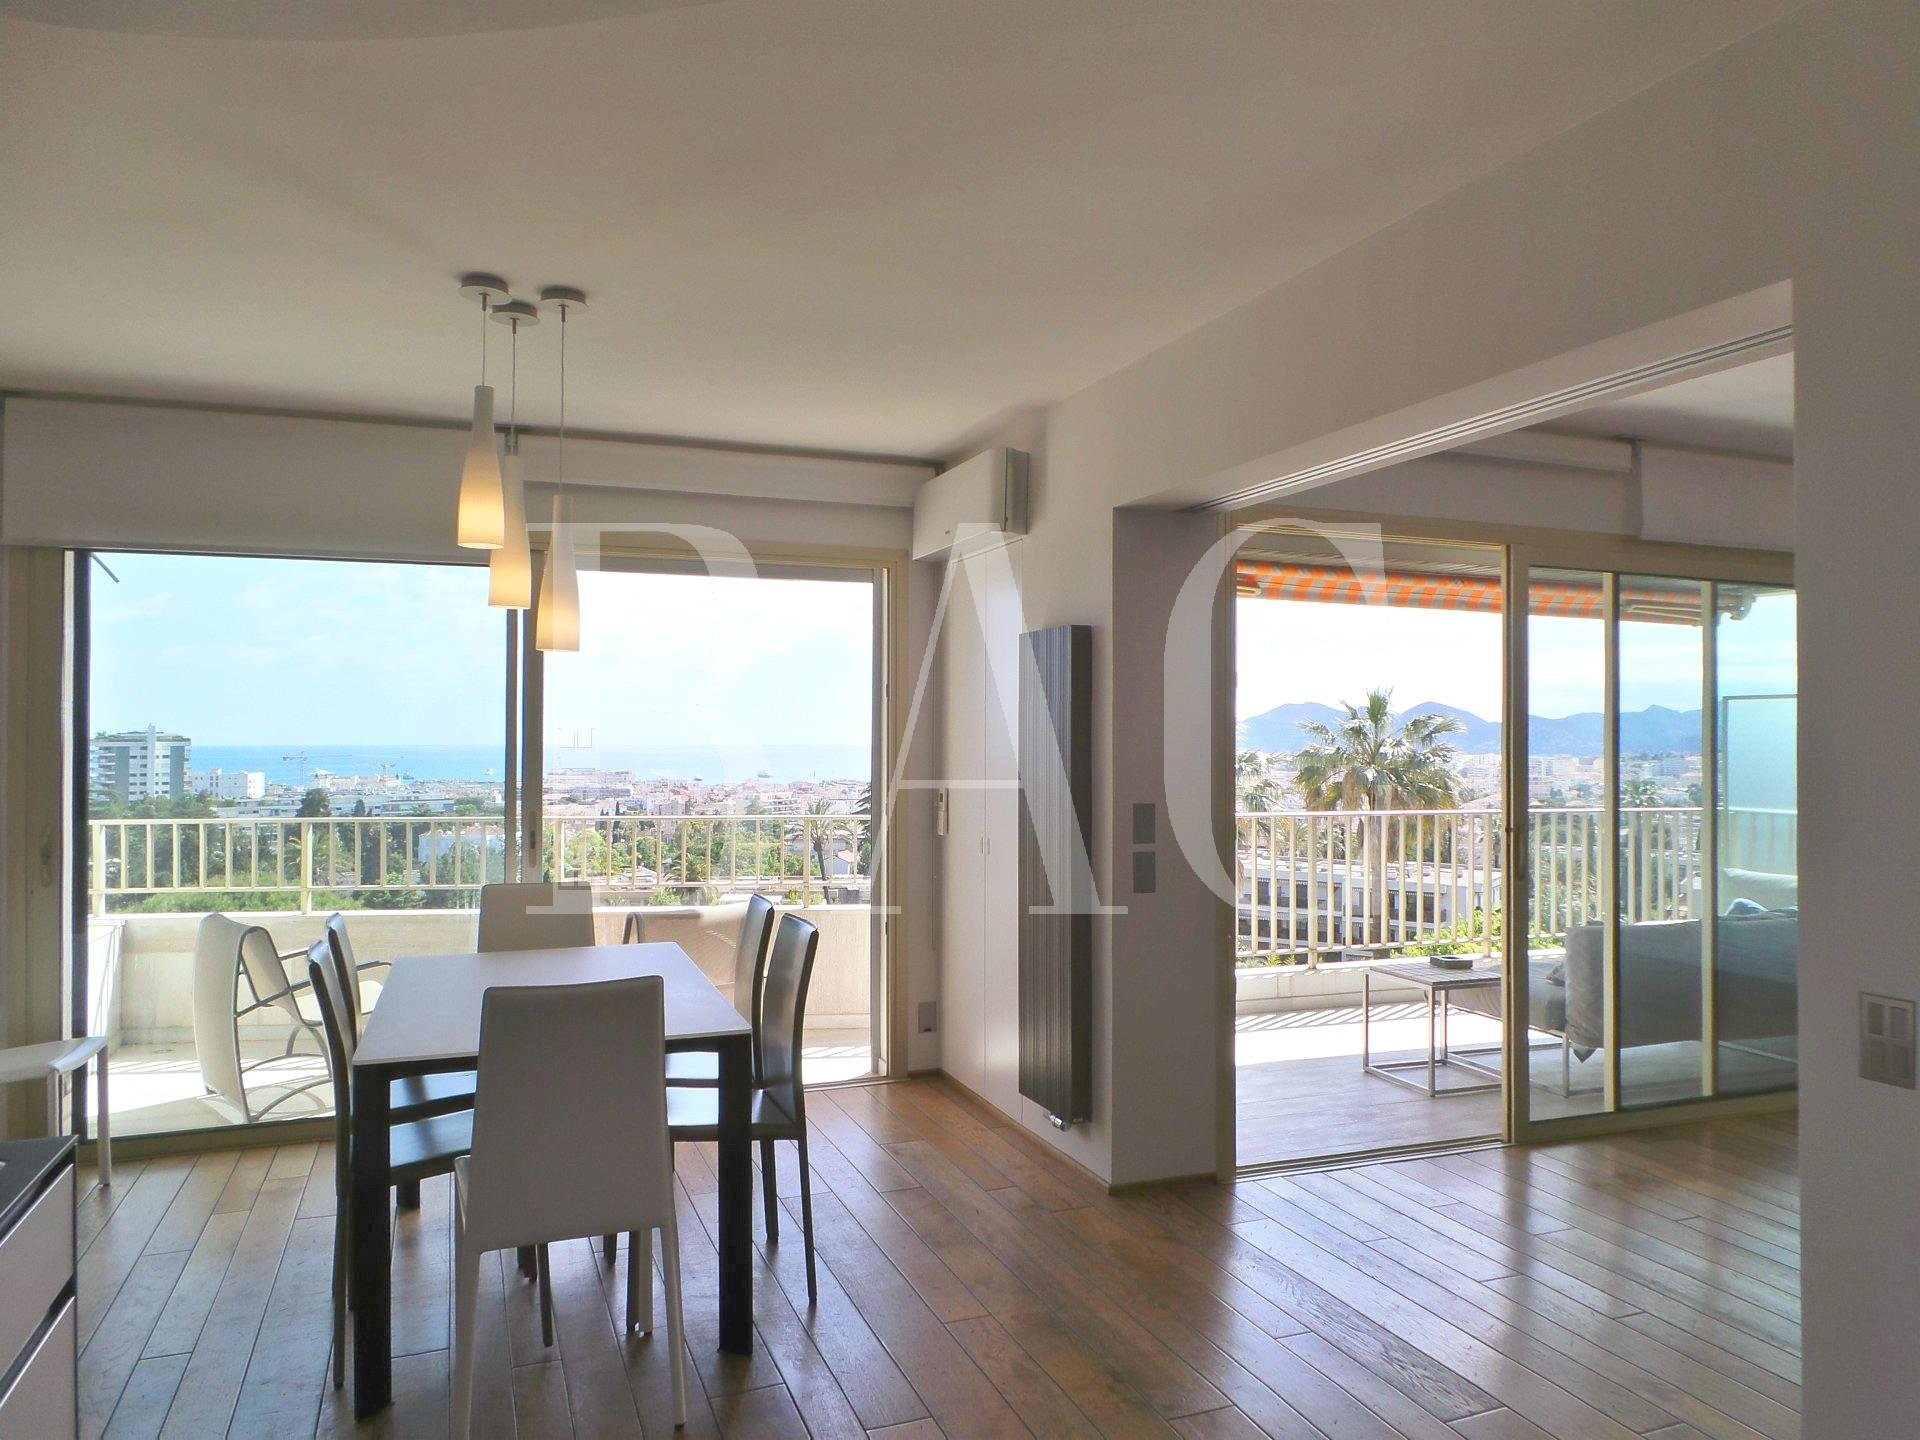 Cannes, apartment 12000 meters from the Palais des Festivals and enjoying a panoramic sea view